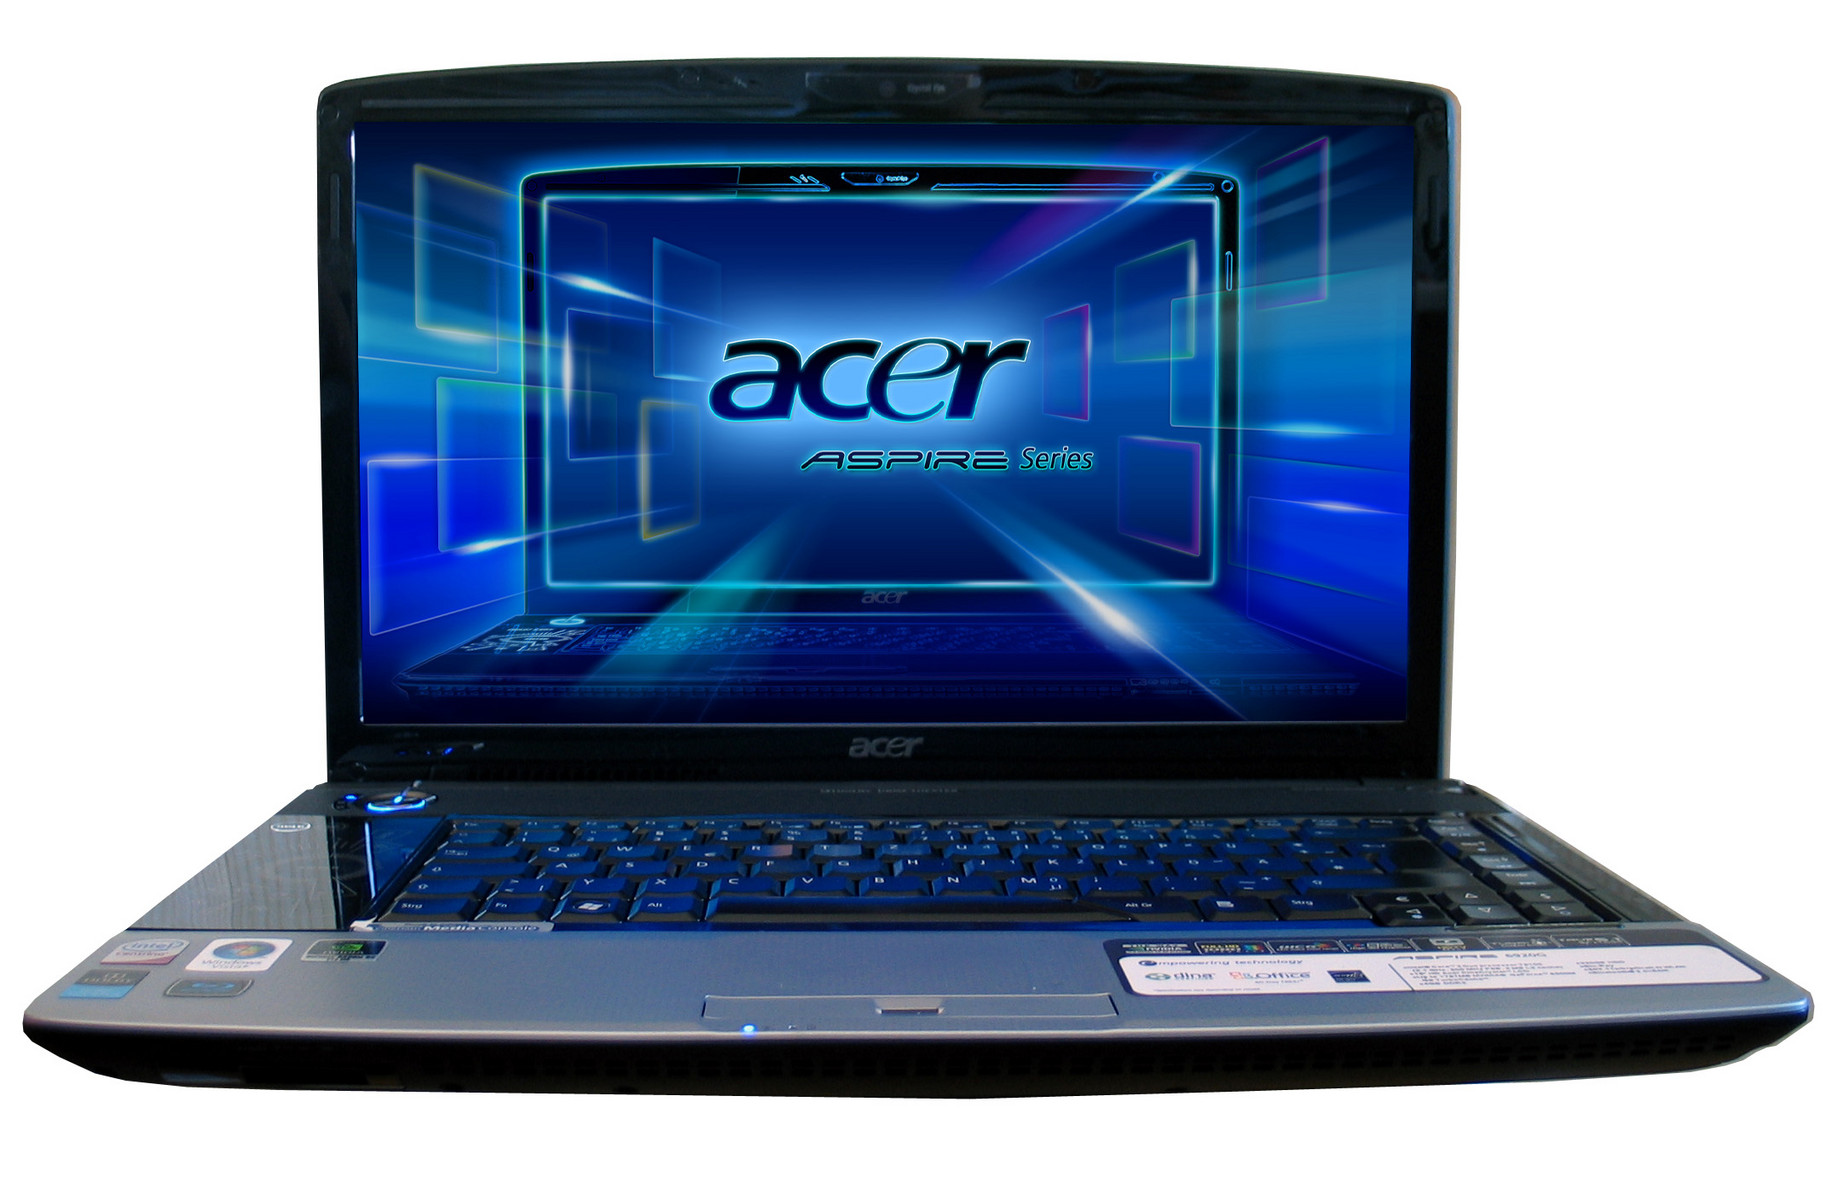 Acer Aspire 6920 Driver Windows 7